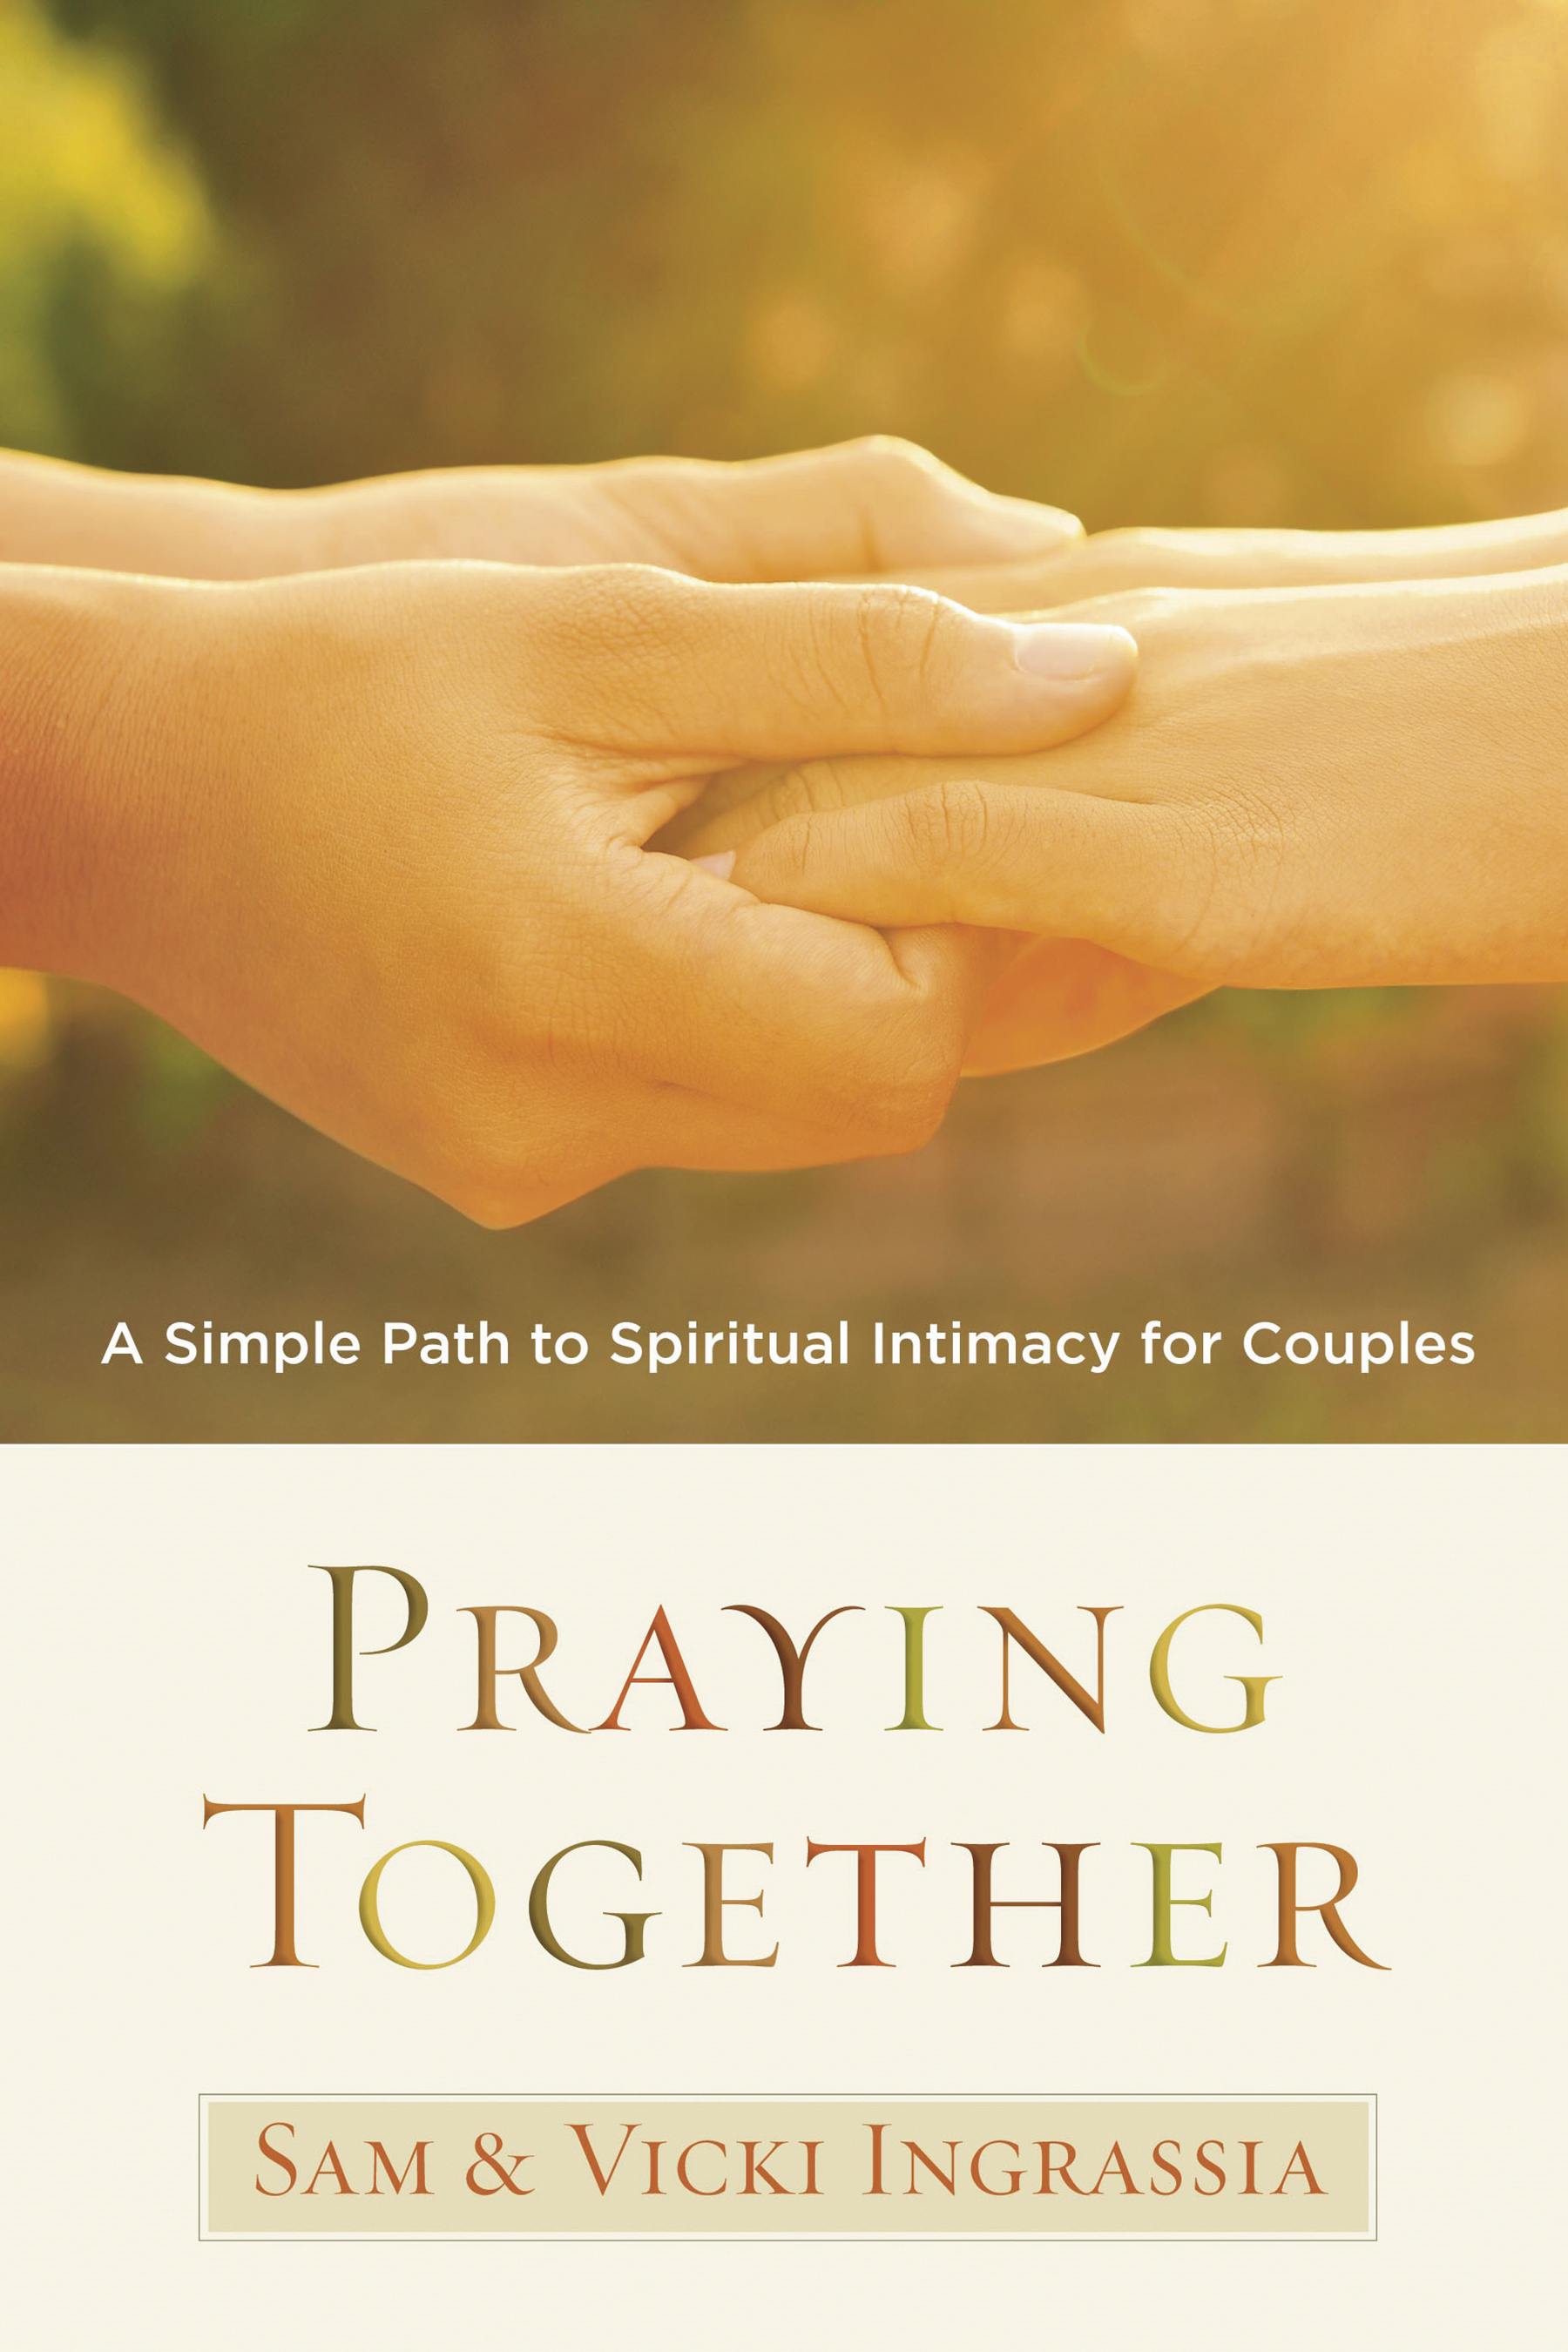 PrayingTogether_N164113